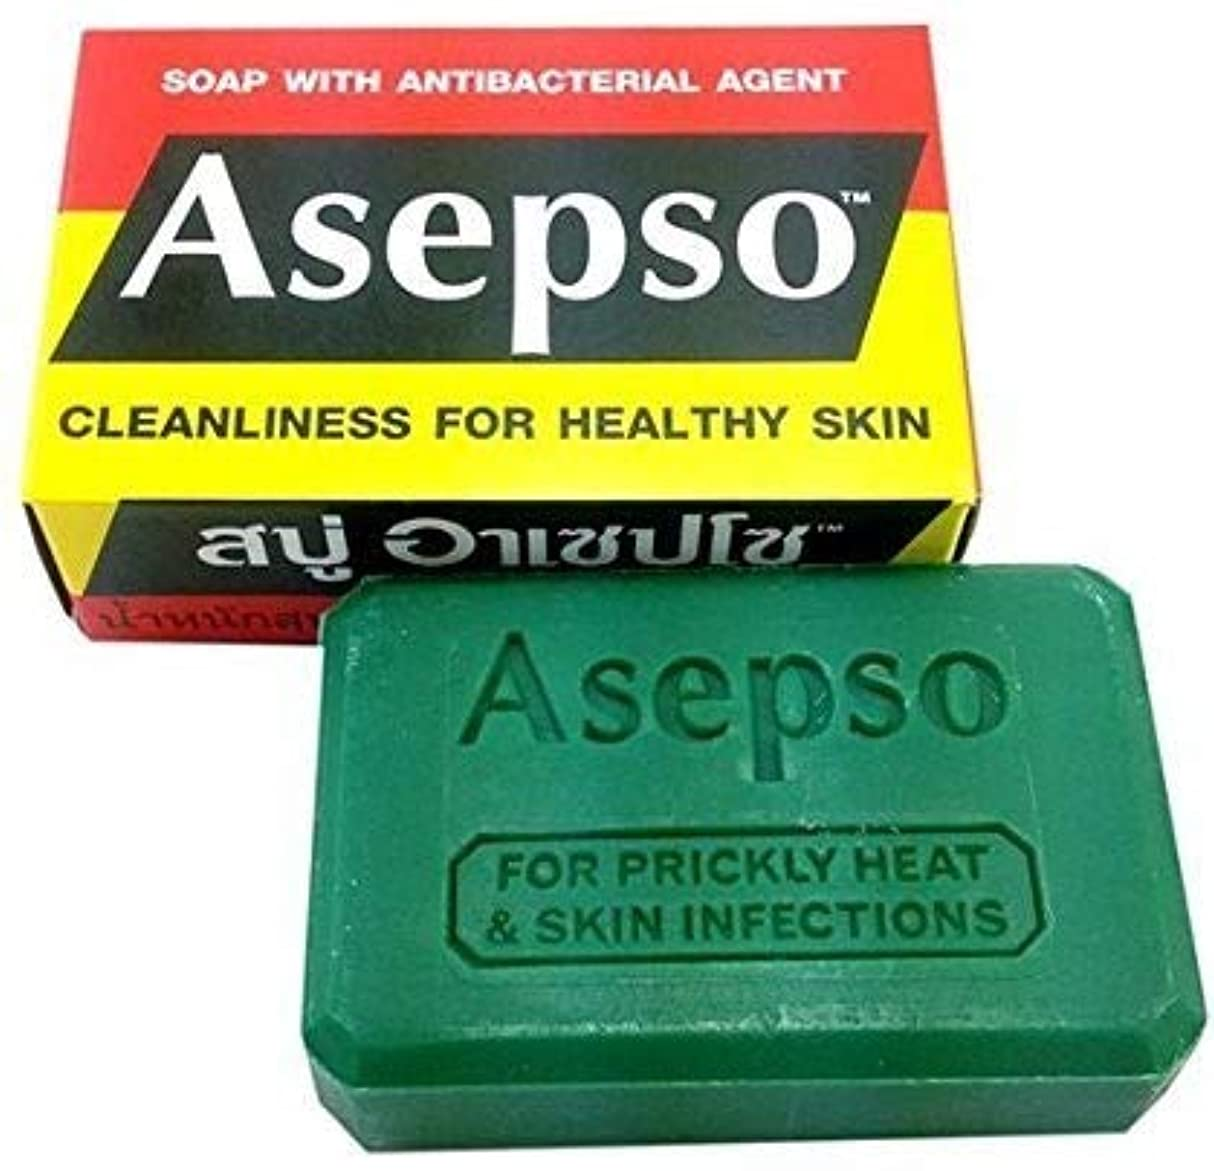 いとこナビゲーション入札Ni Yom Thai shop Asepso Soap with Antibacterial Agent 80 Grams